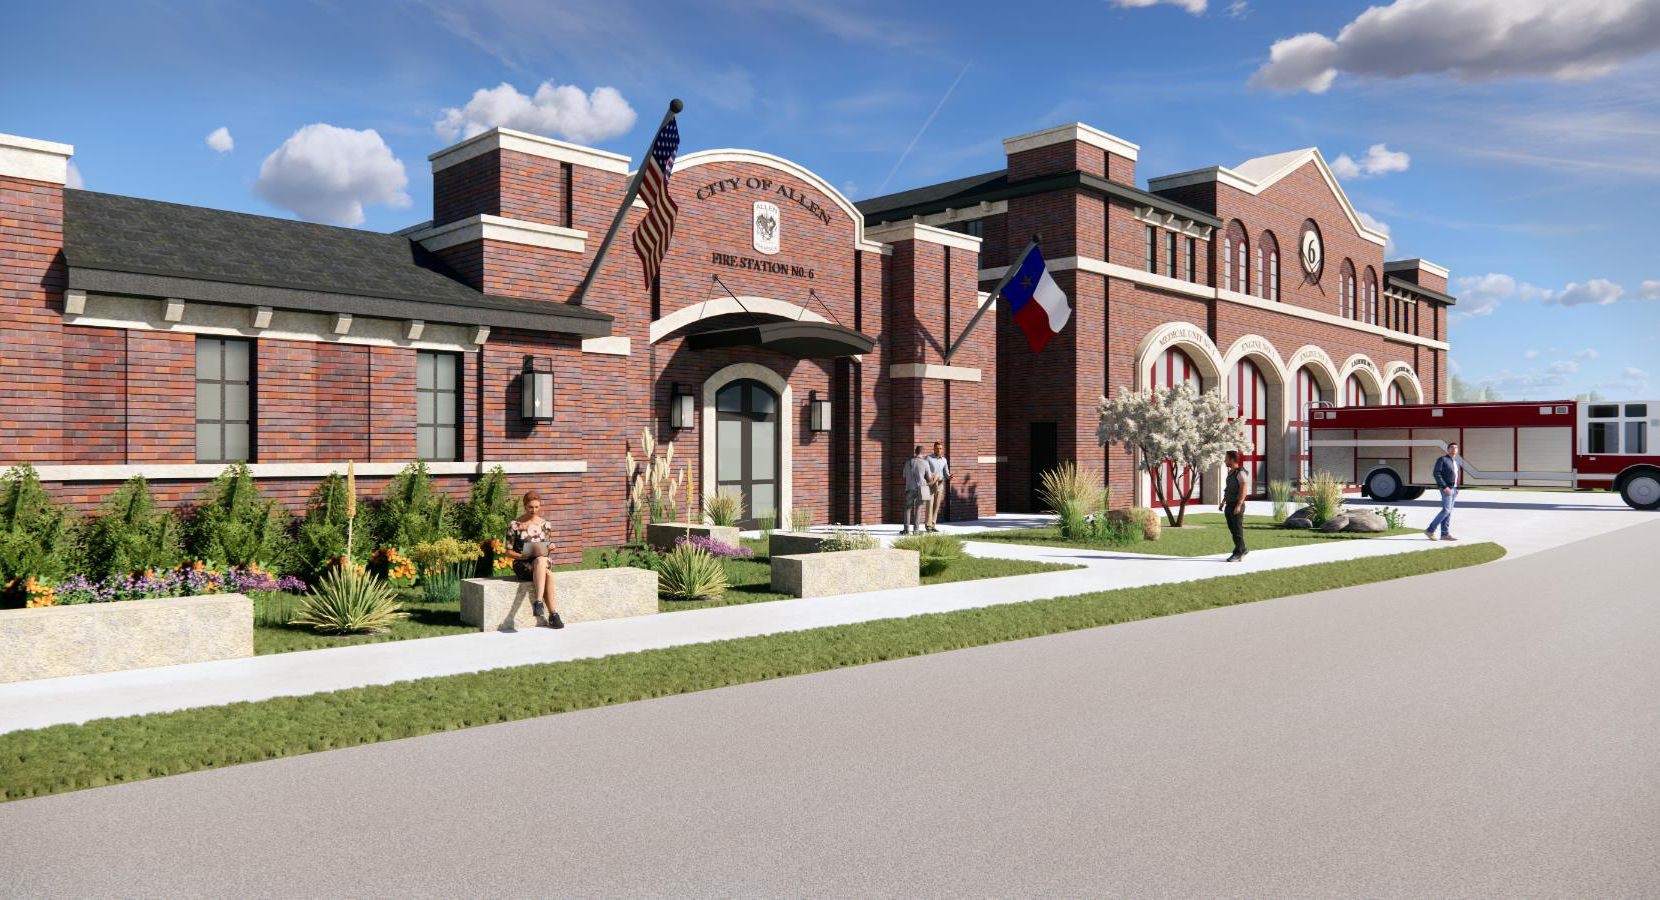 Allen's sixth fire station, pictured in this rendering, will be located on the southwest corner of Ridgeview Drive and North Watters Road.